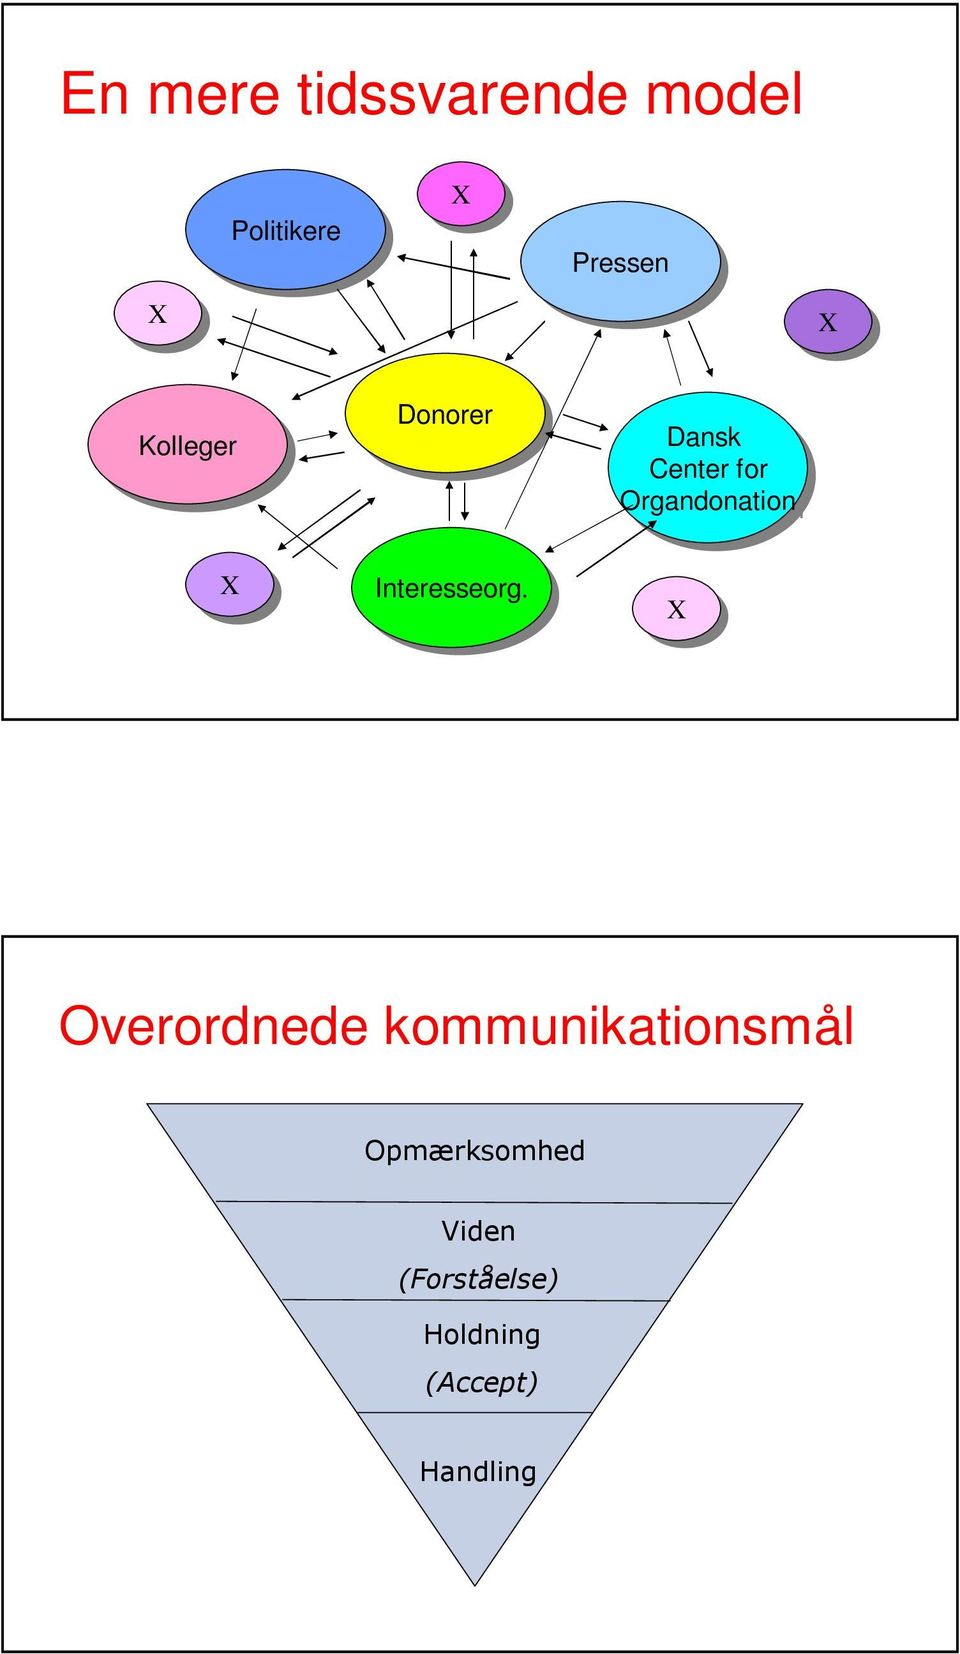 Organdonation XX Interesseorg.